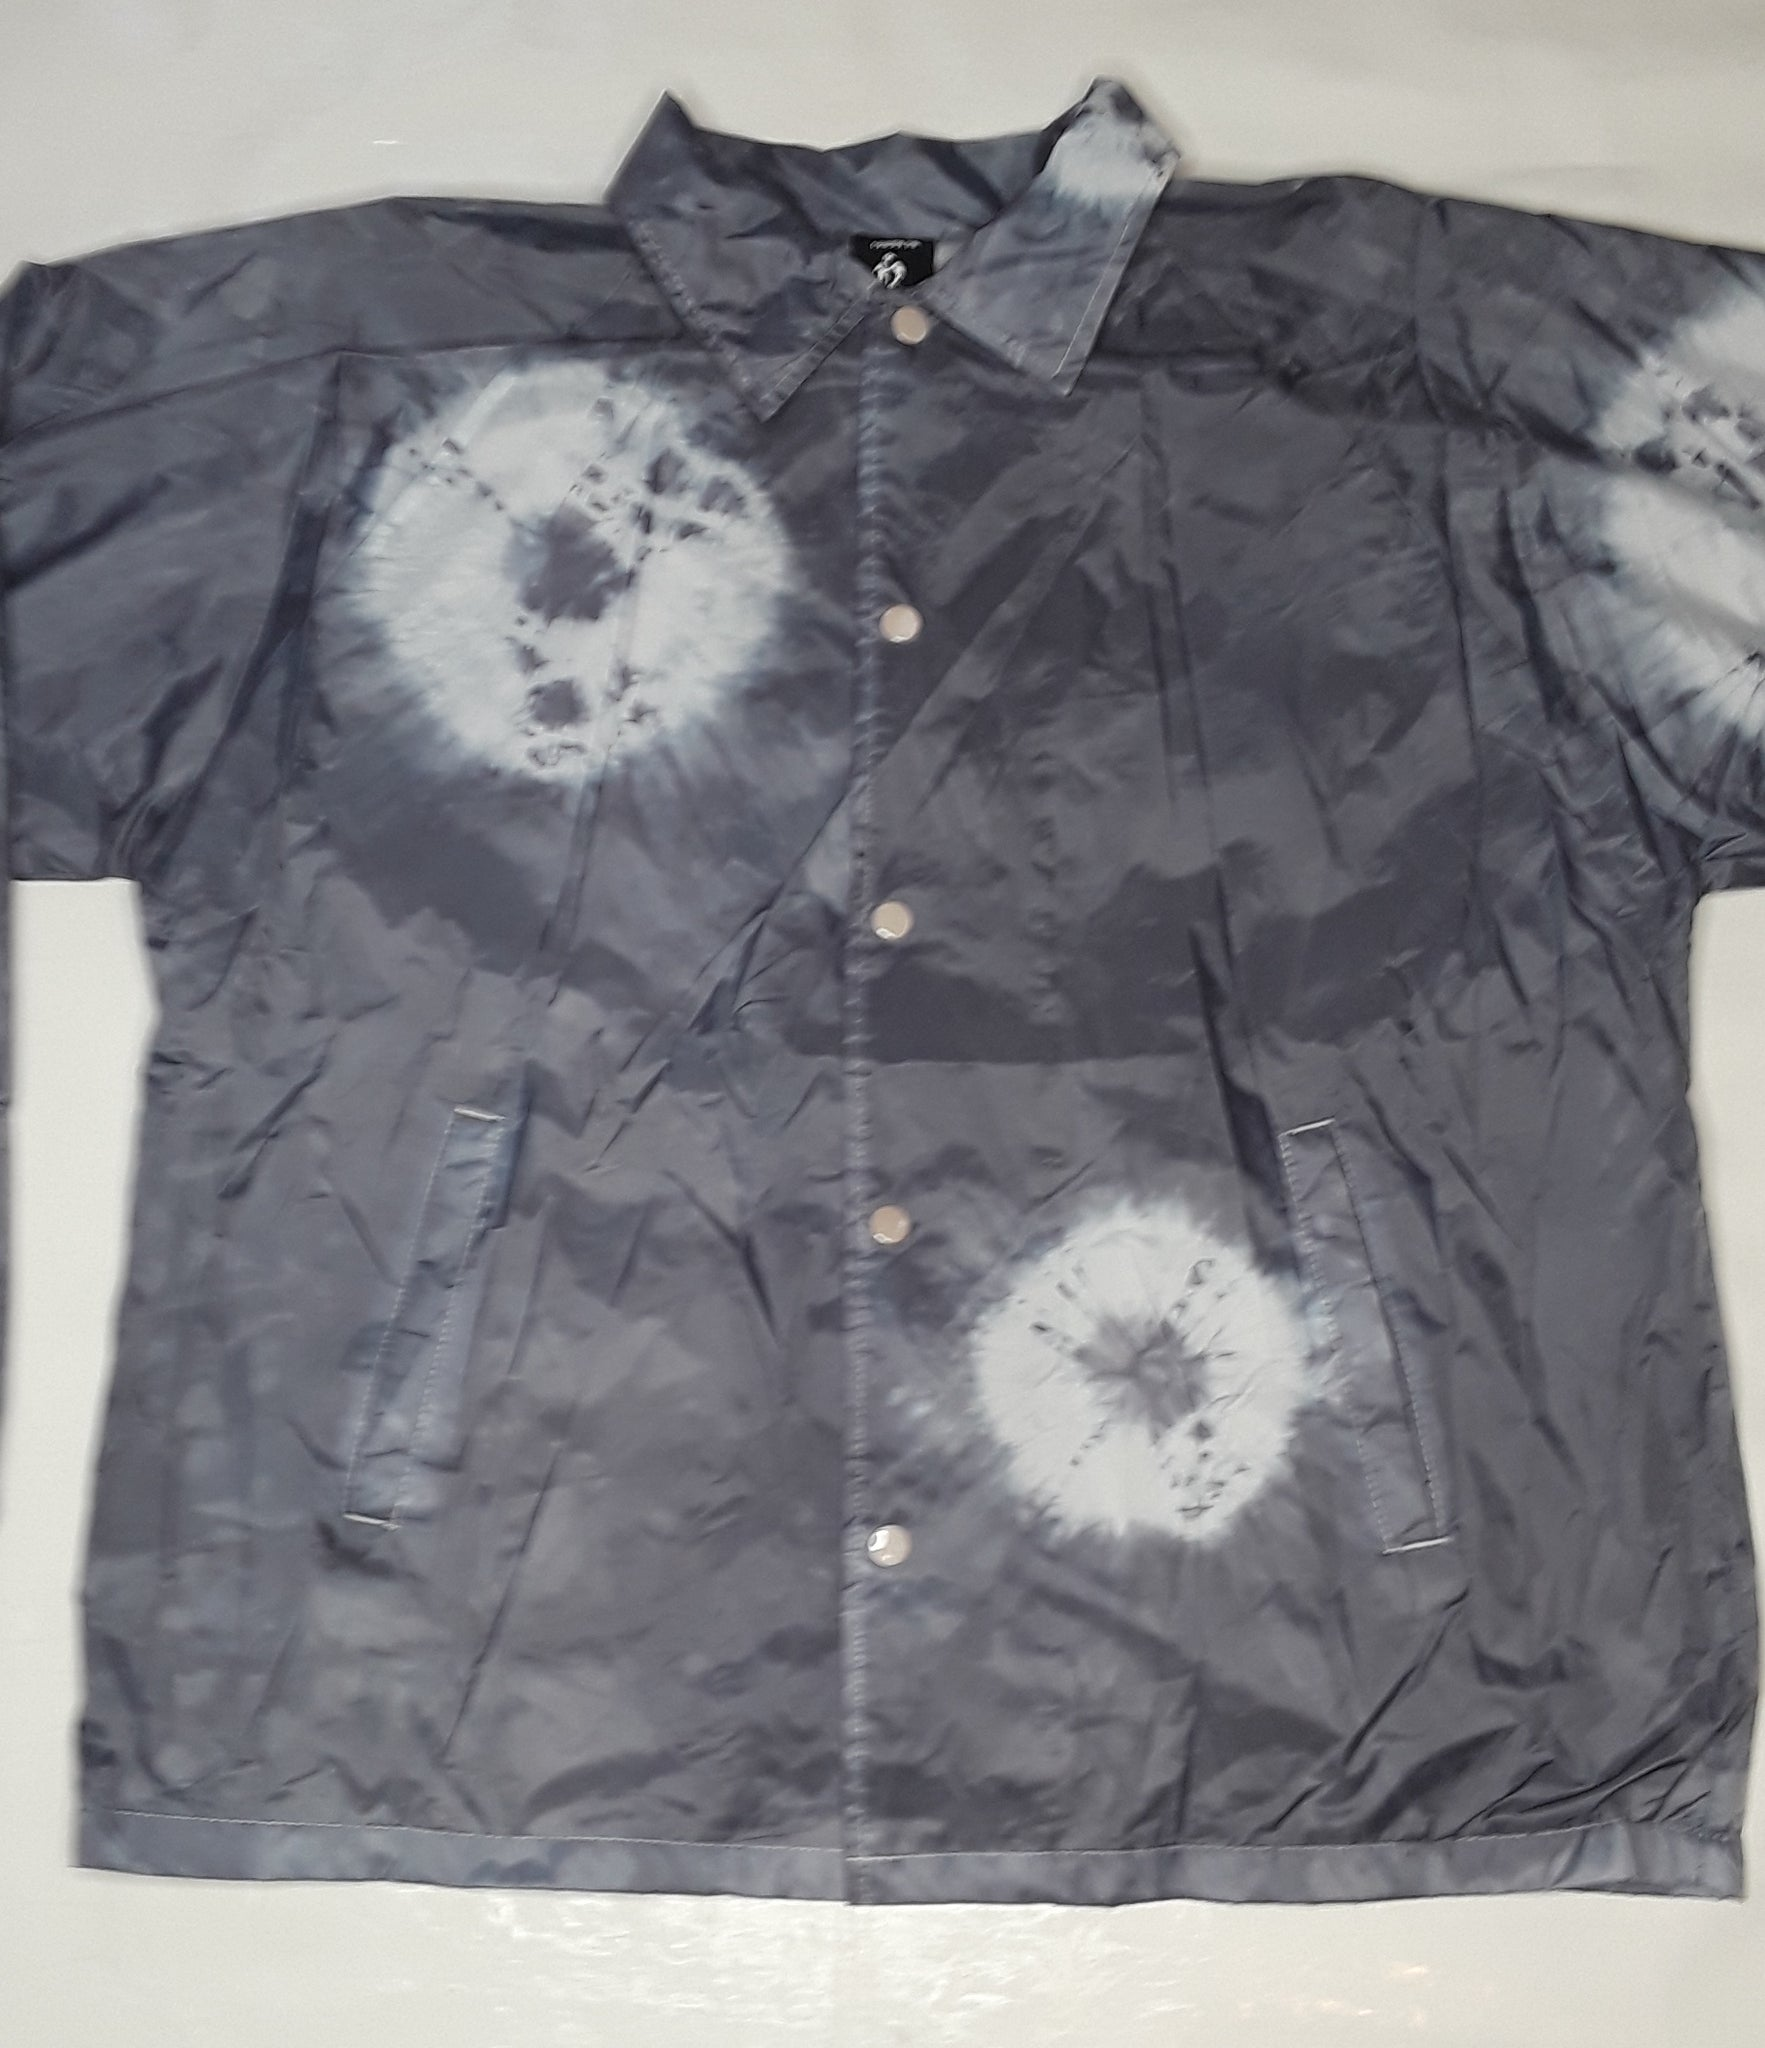 tye dye windbreaker jacket